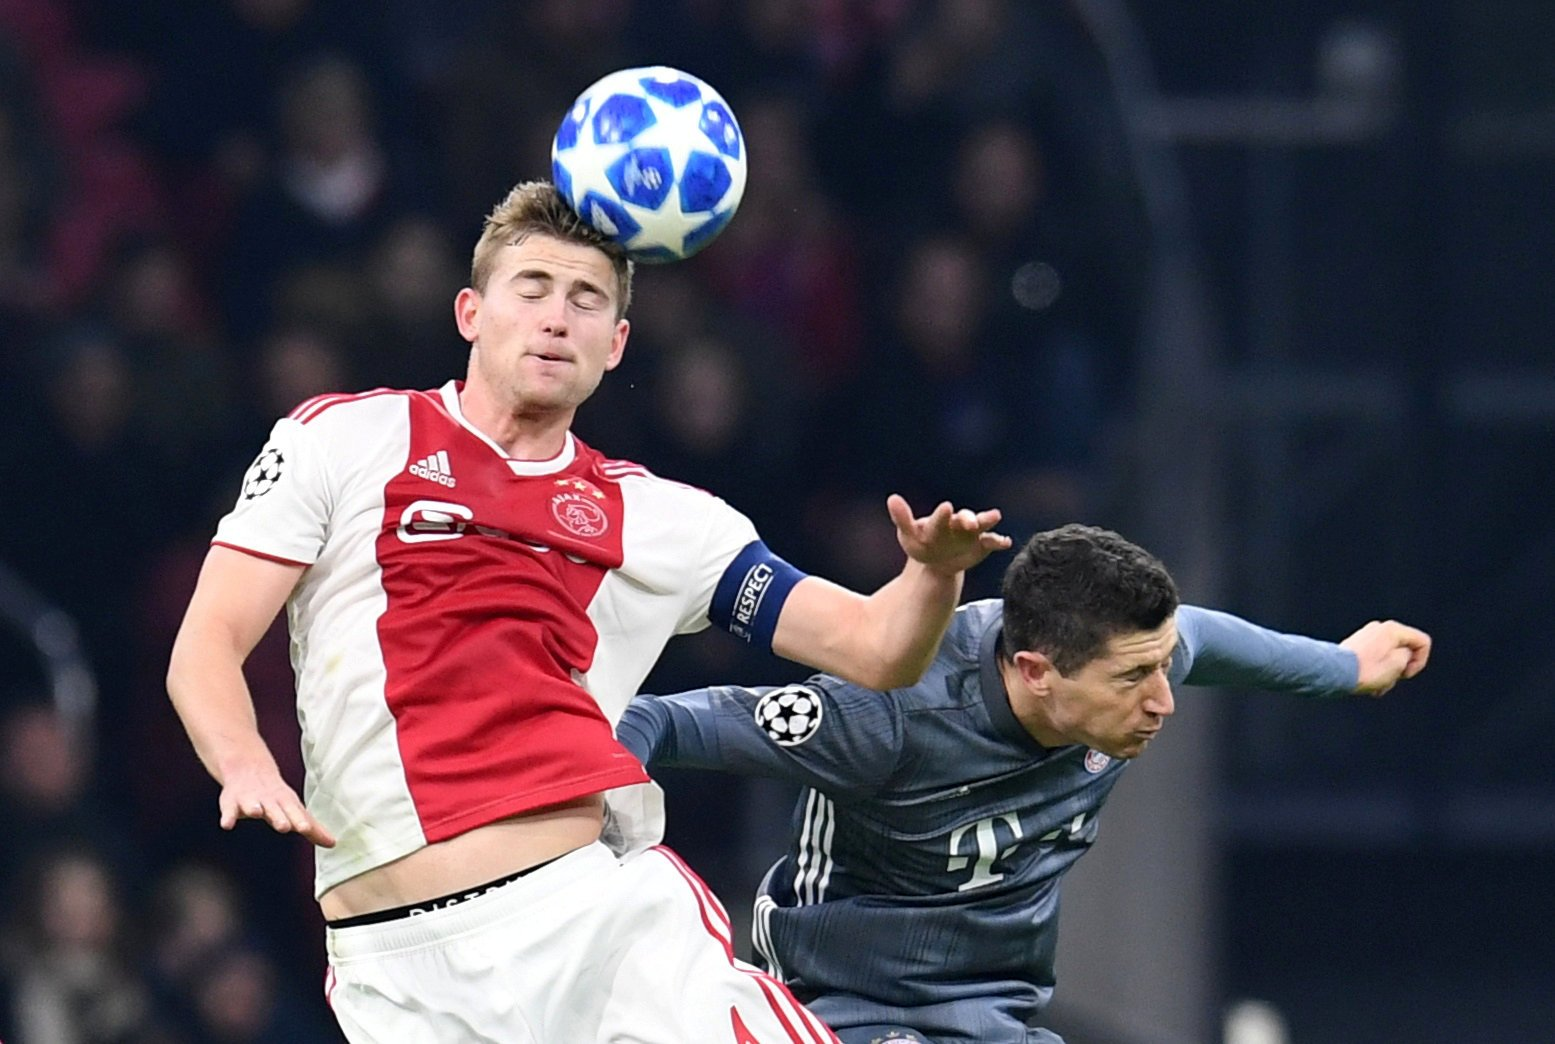 Opinion: Mathijs de Ligt would add a game-changing layer of quality to Liverpool's rapidly improving defensive unit